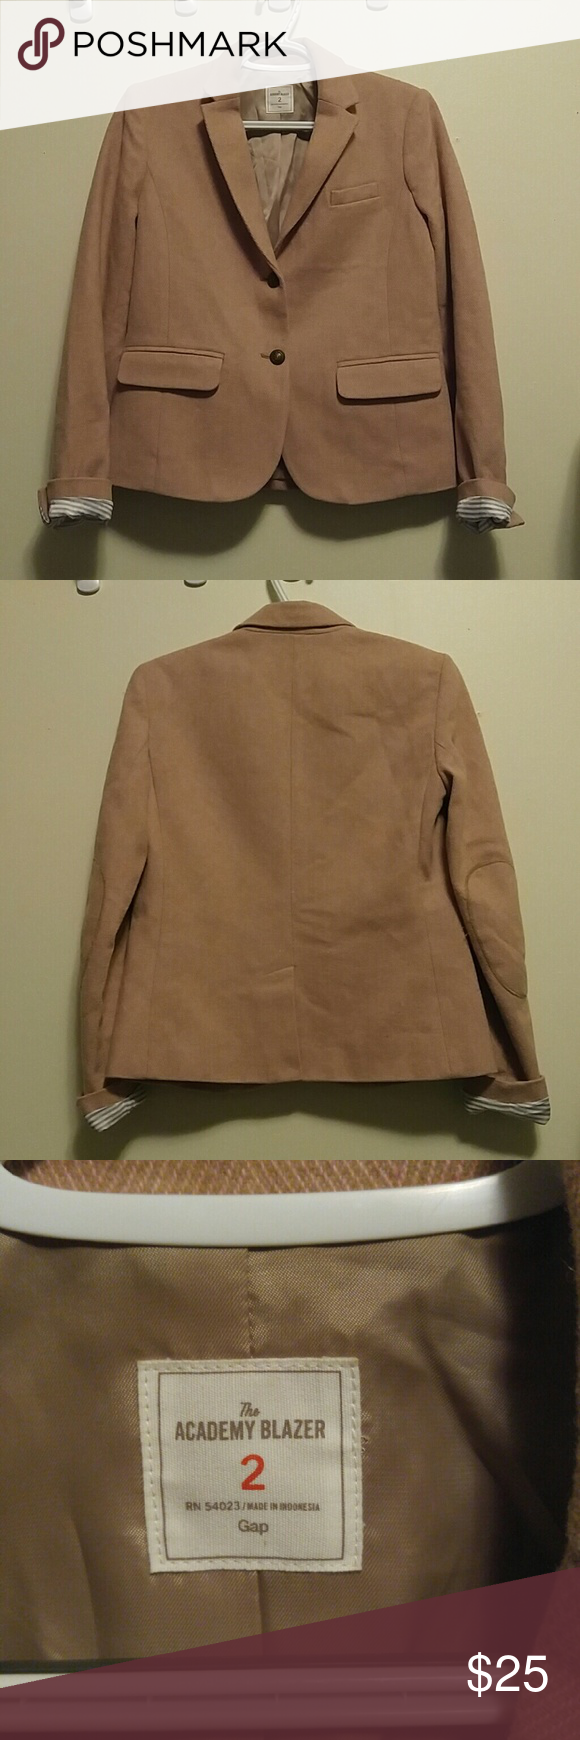 Gap Blush Academy Blazer Worn once or twice. Gap blazer sleeves lined with stripes so perfect to fold and roll. Size 2.    Thanks for looking! GAP Jackets & Coats Blazers